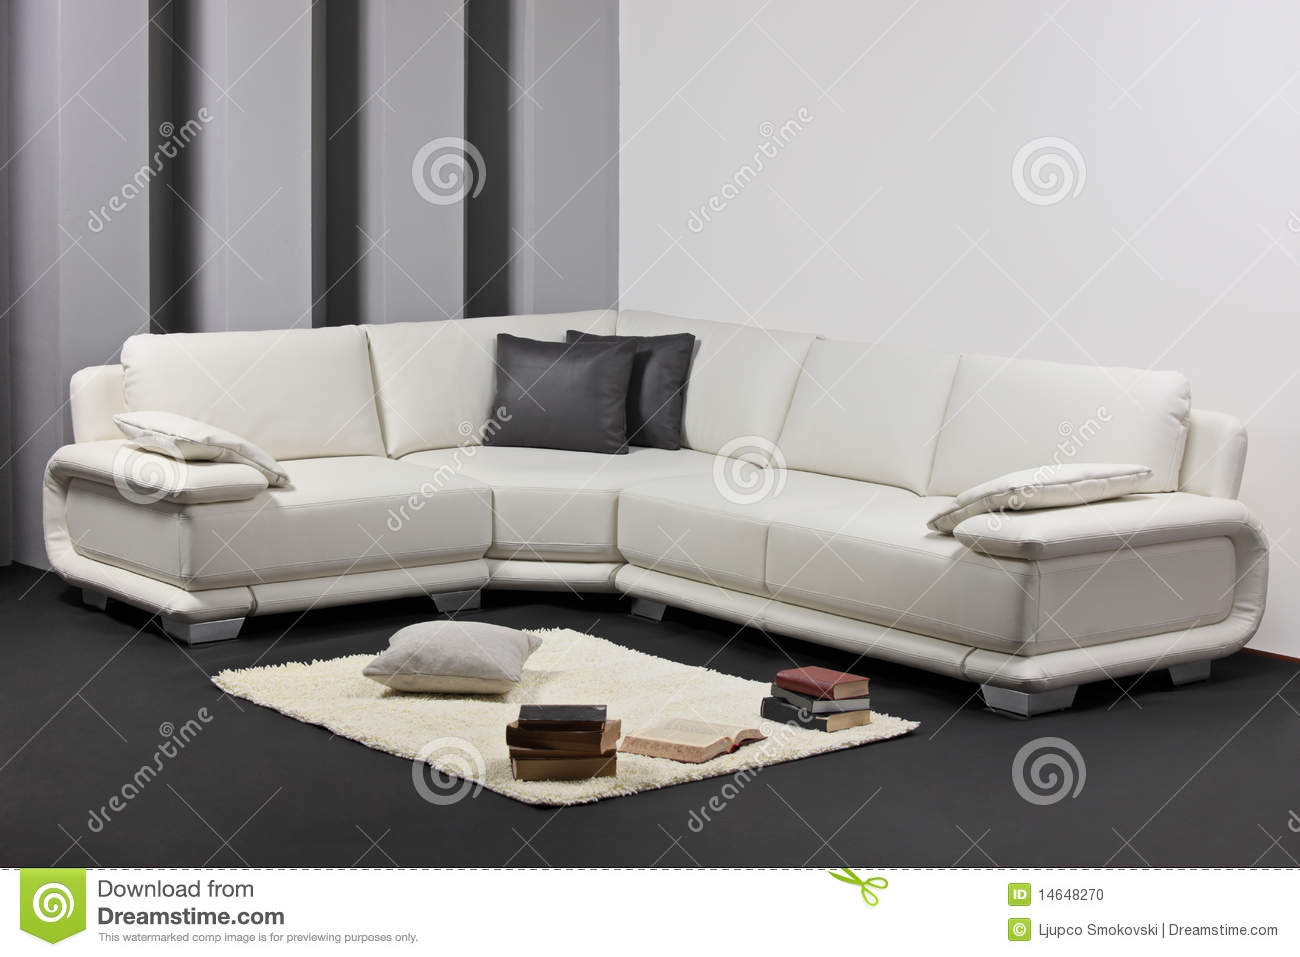 A Modern Minimalist Living Room With Furniture Stock Photo Image 14648270